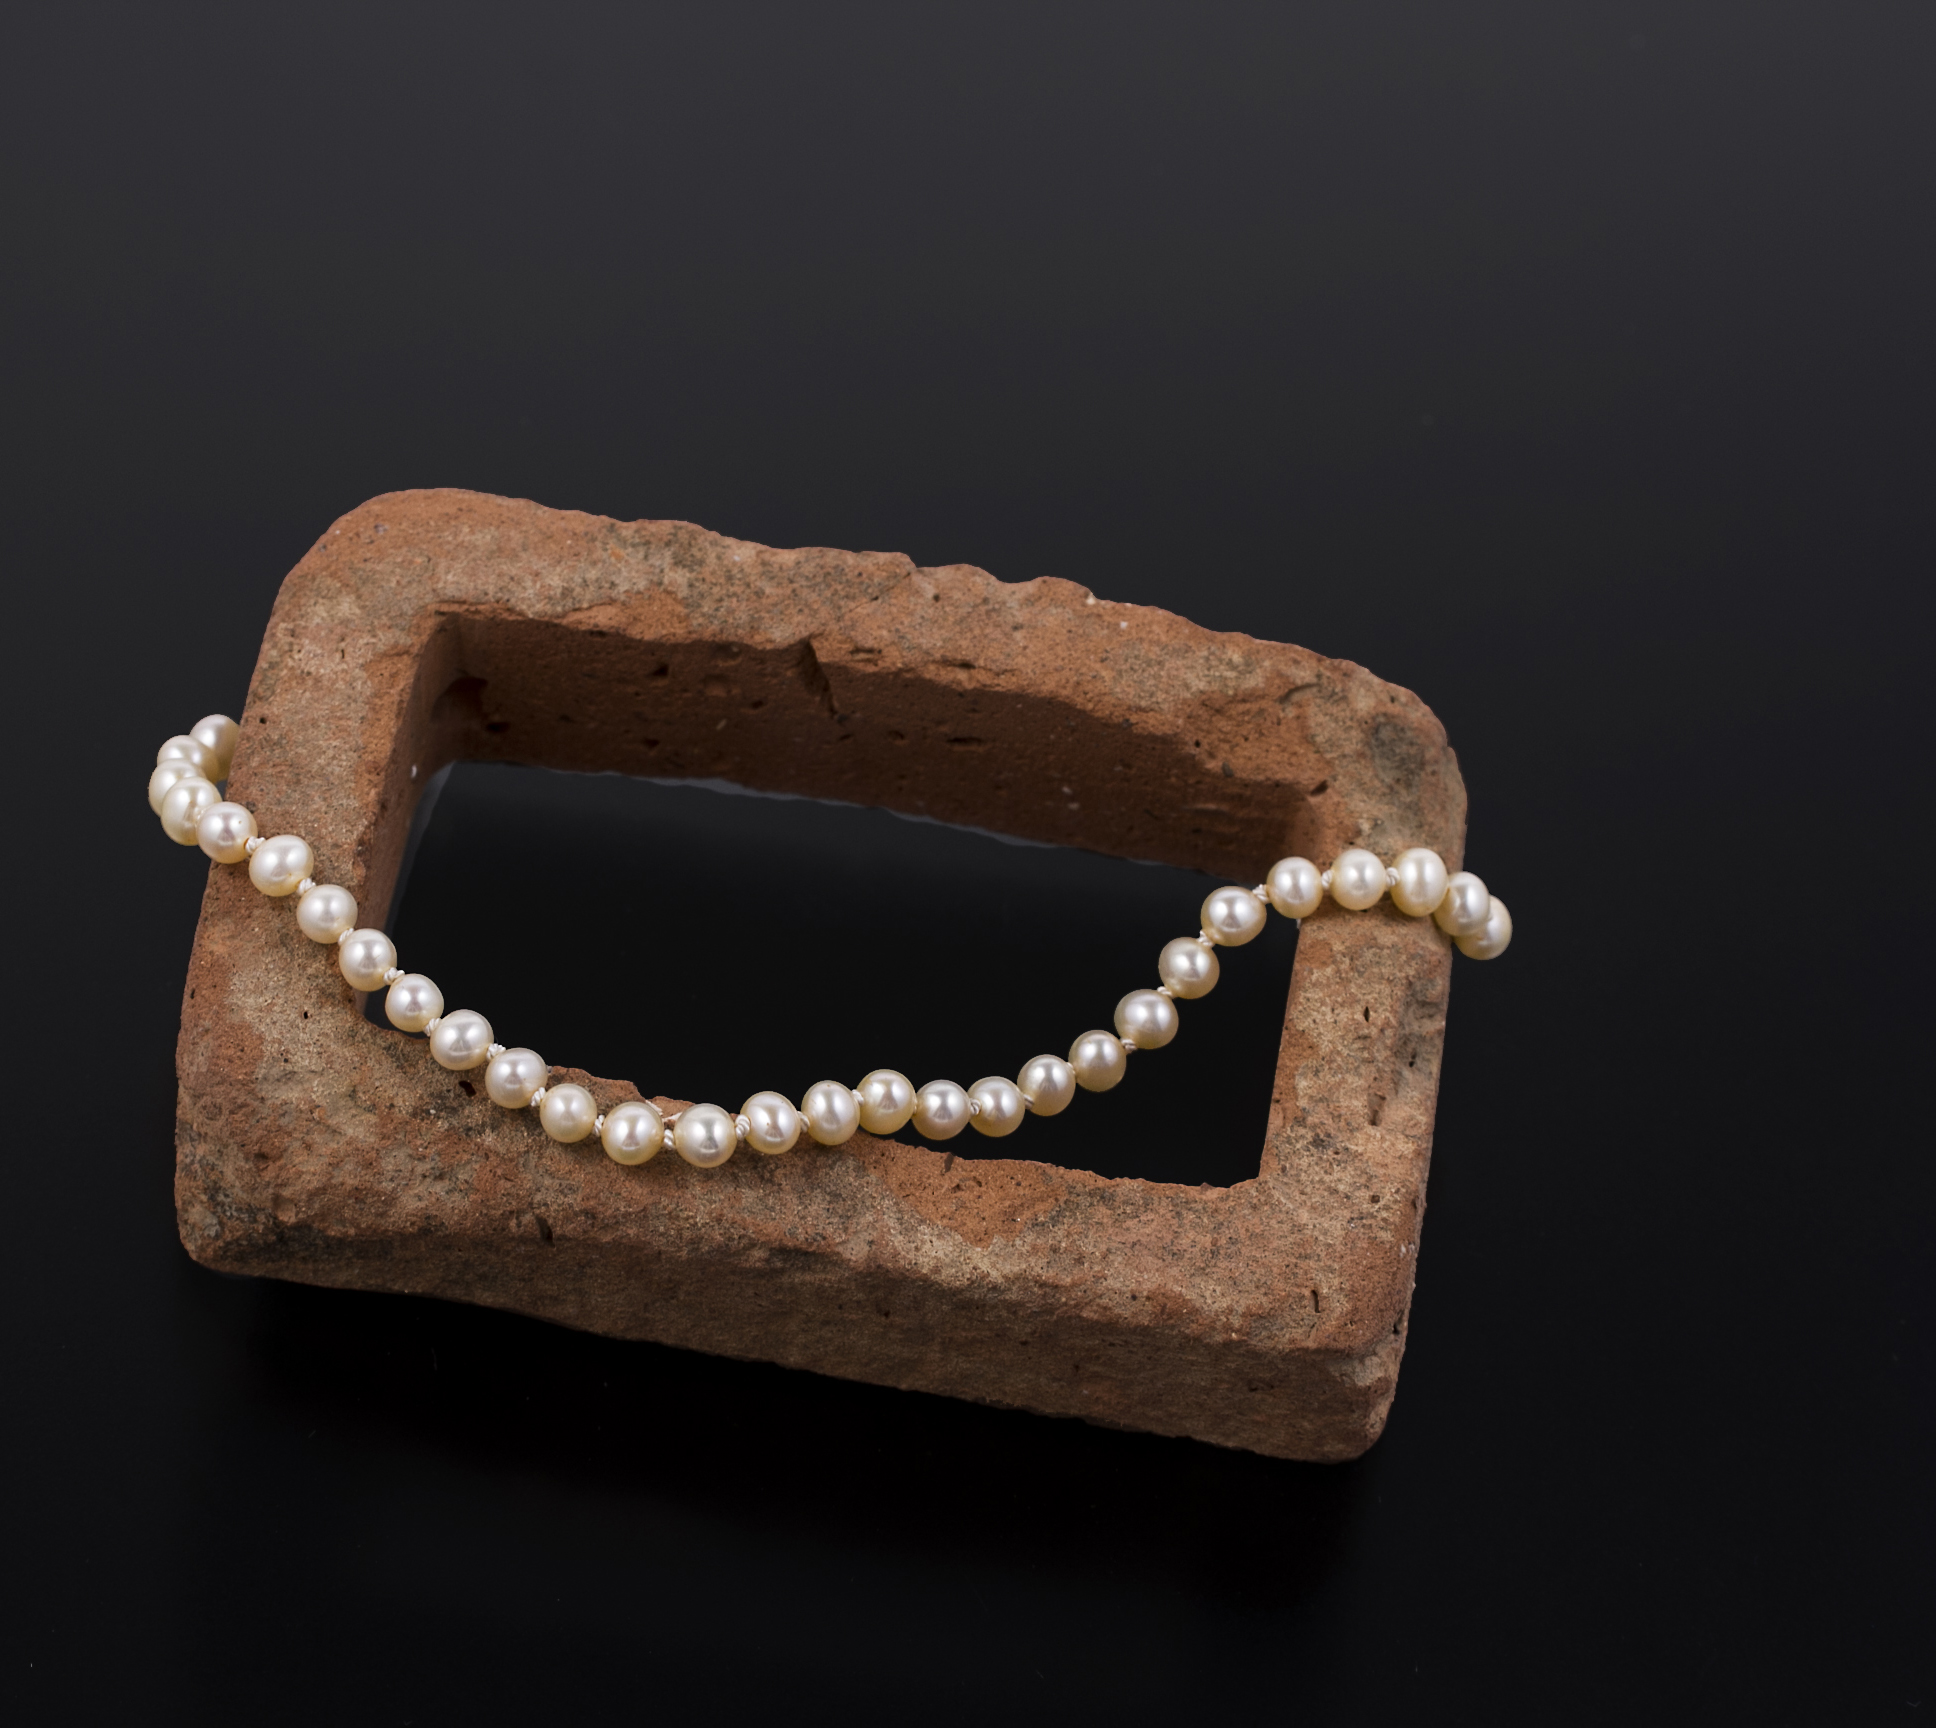 Transmutations 18, 2016, foraged brick, inherited pearls, silk, sterling silver